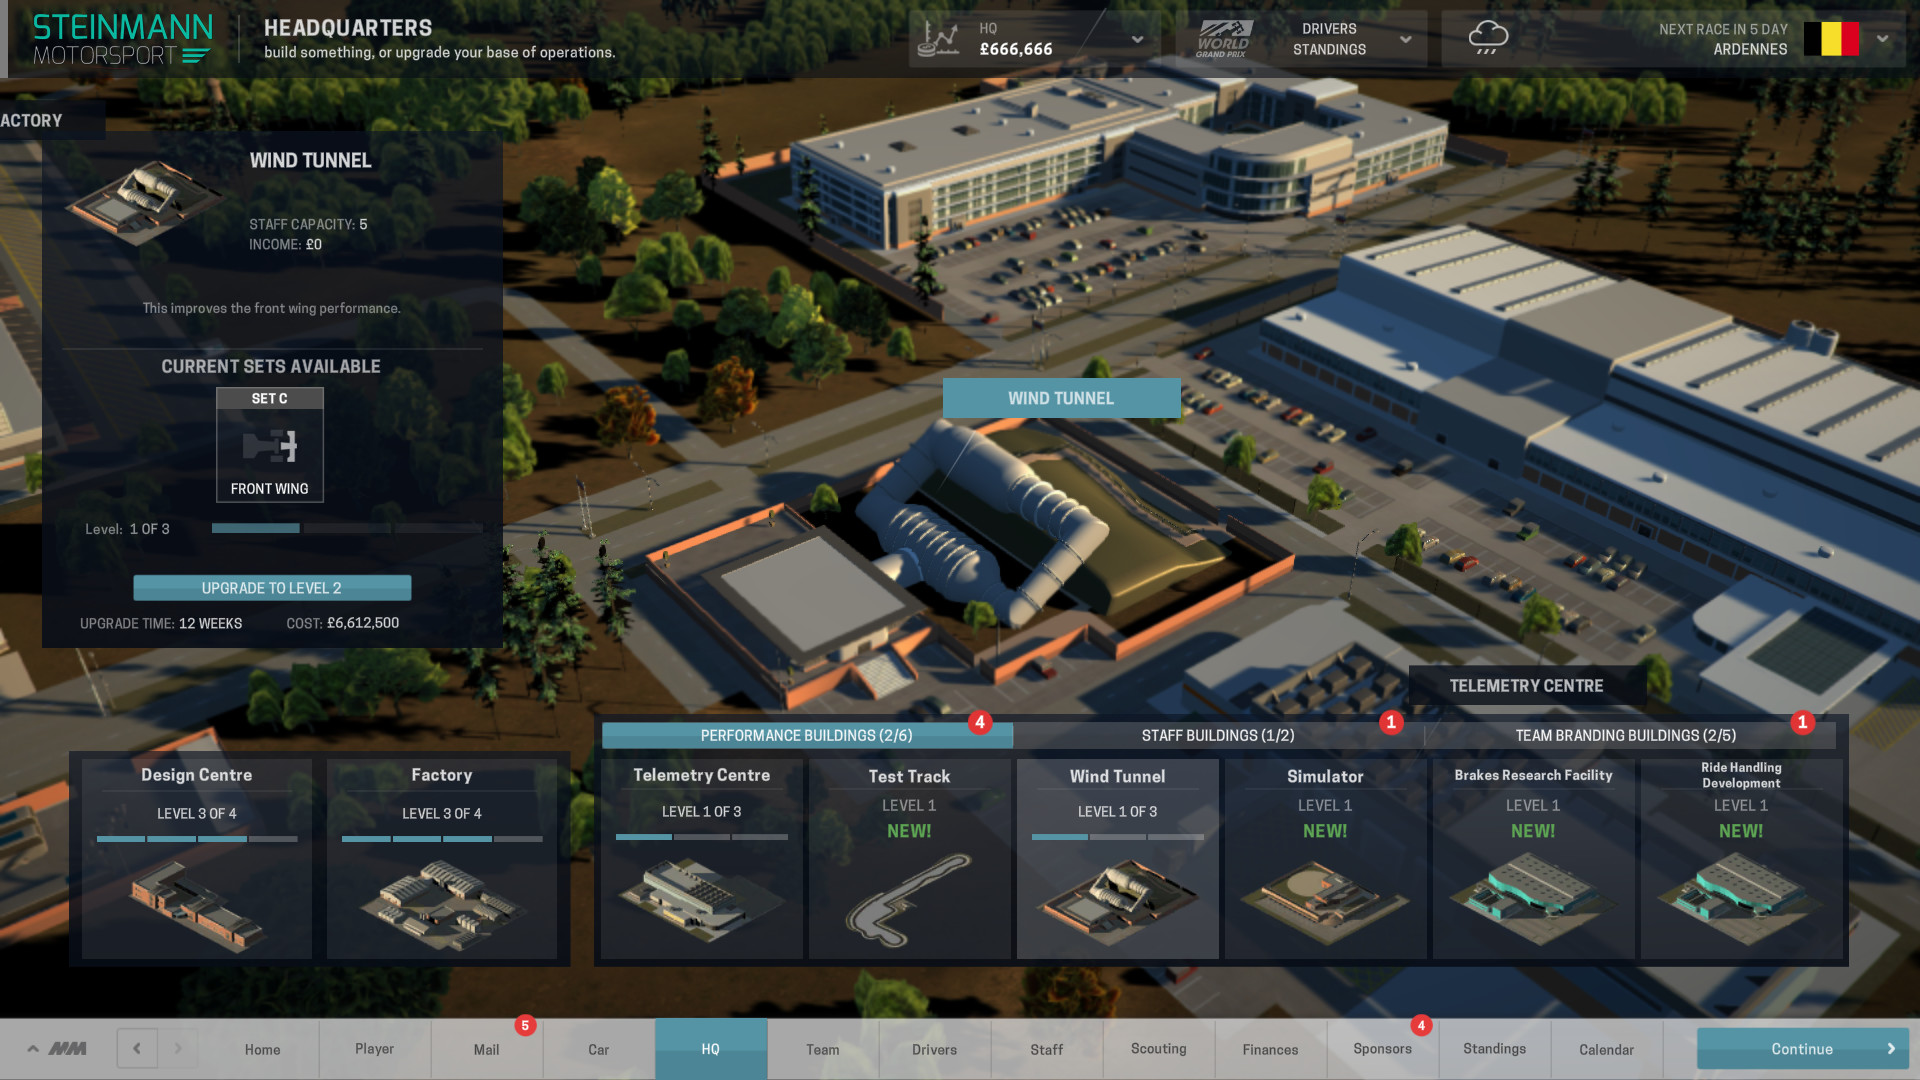 Motorsport Manager Screenshot 3